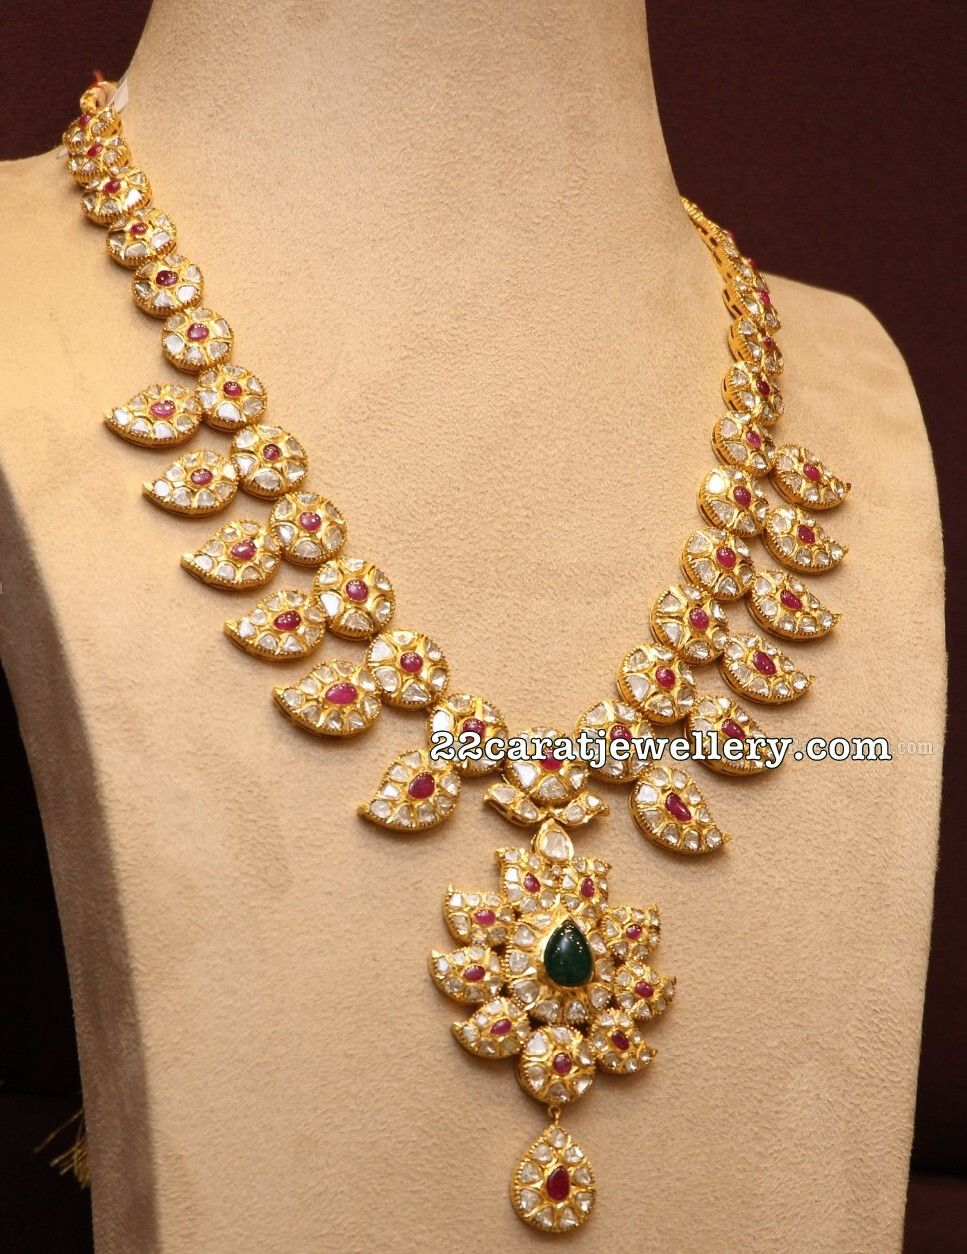 Latest gold necklace designs in grams pachi necklace latest jewellery - Latest Collection Of Best Indian Jewellery Designs